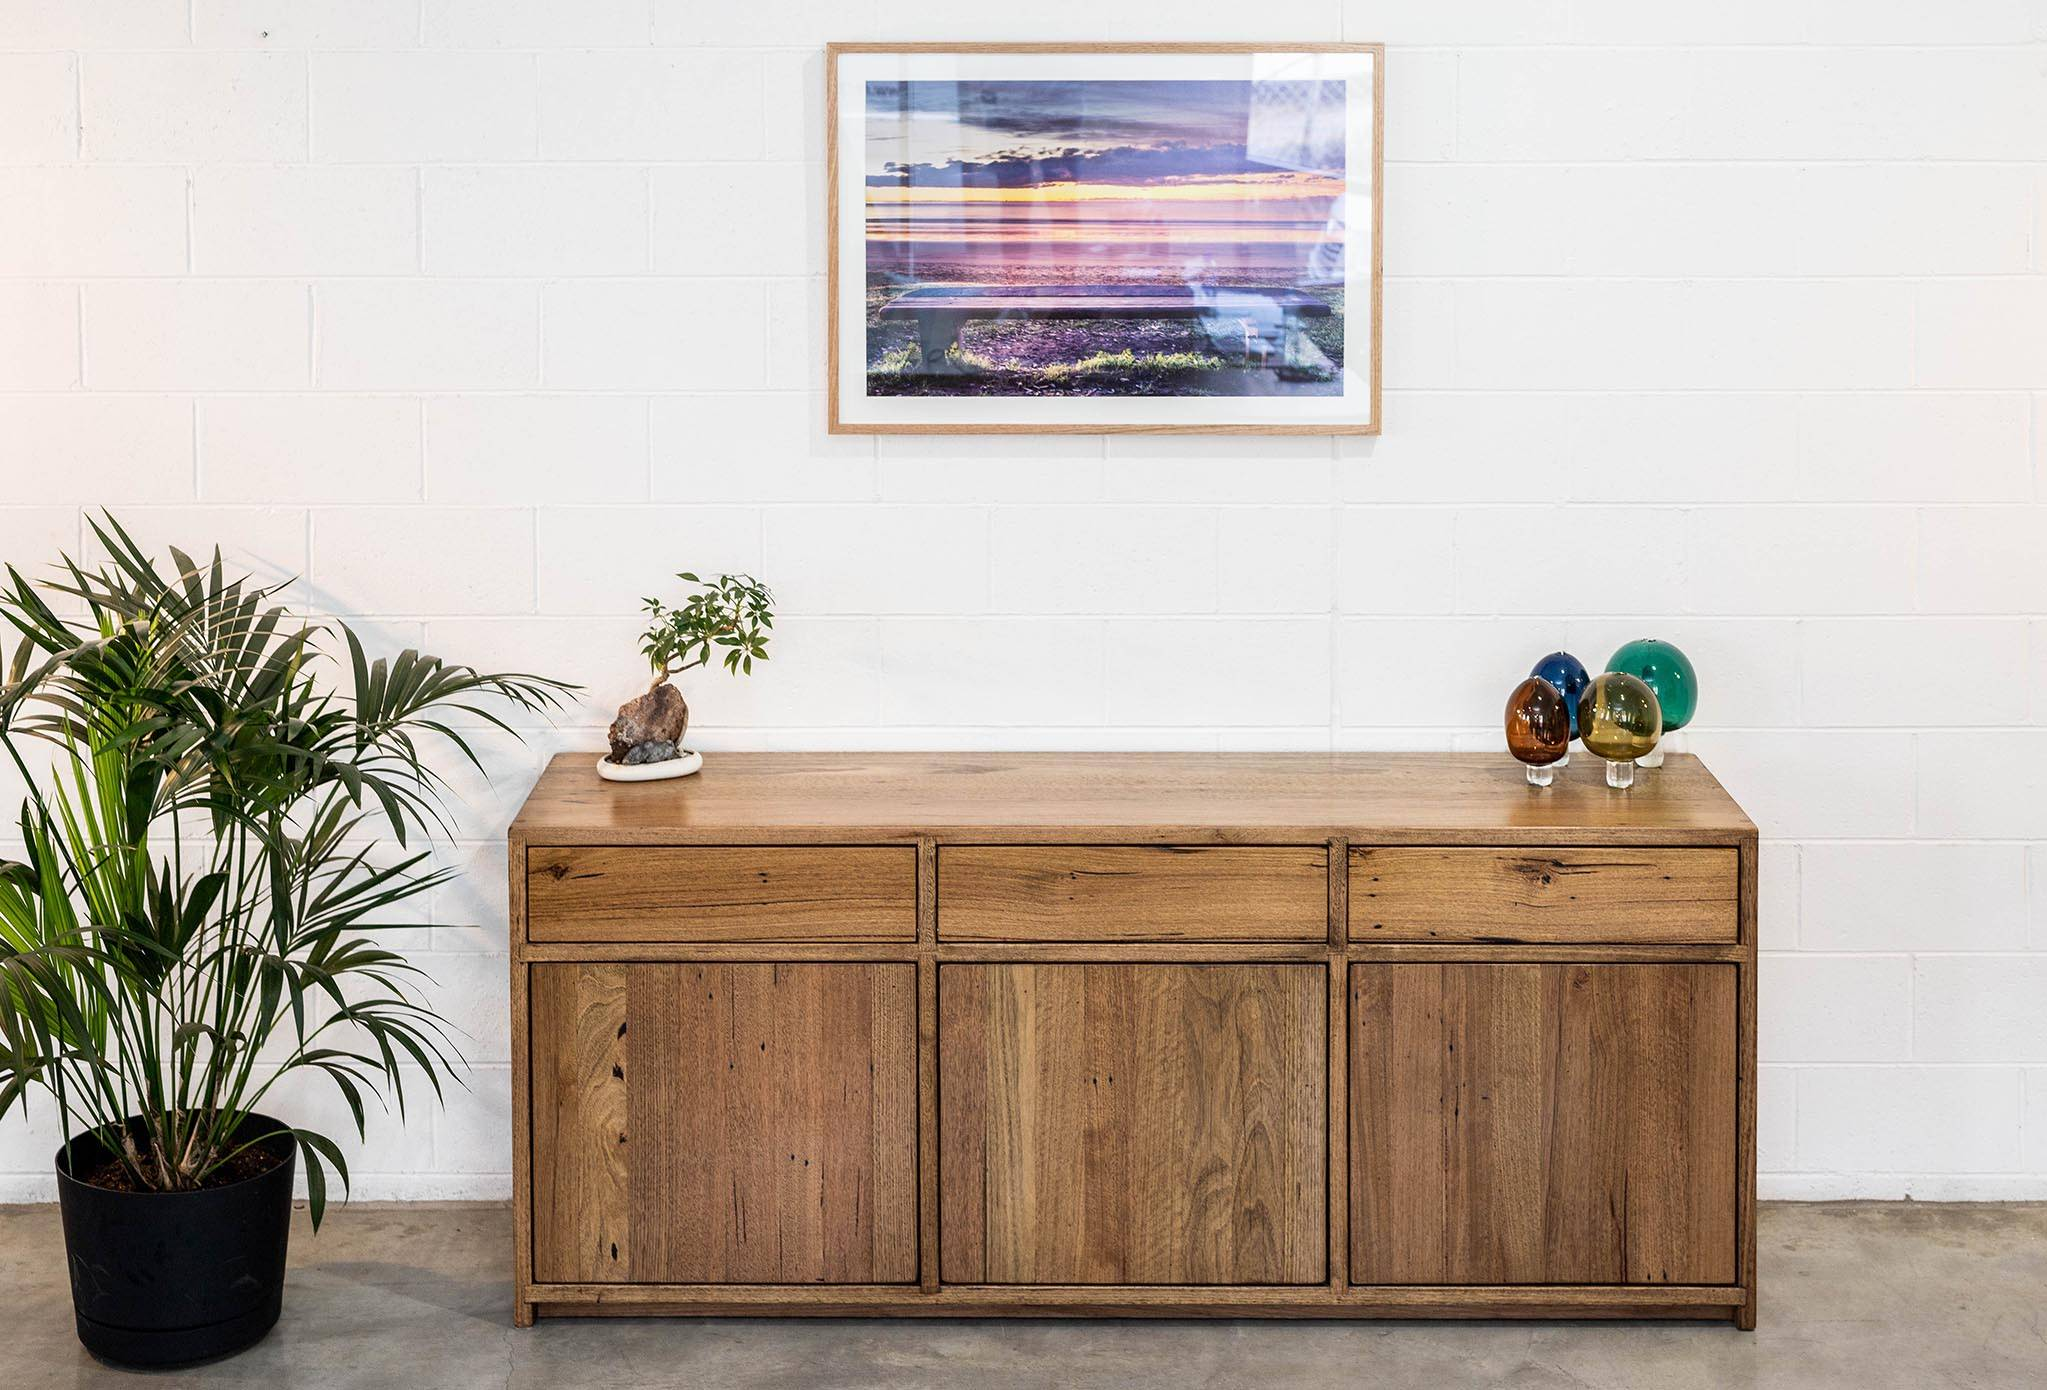 Sideboard Buffet Sringy Bark Push Open Doors  + Draawers, Adjustable Shelves